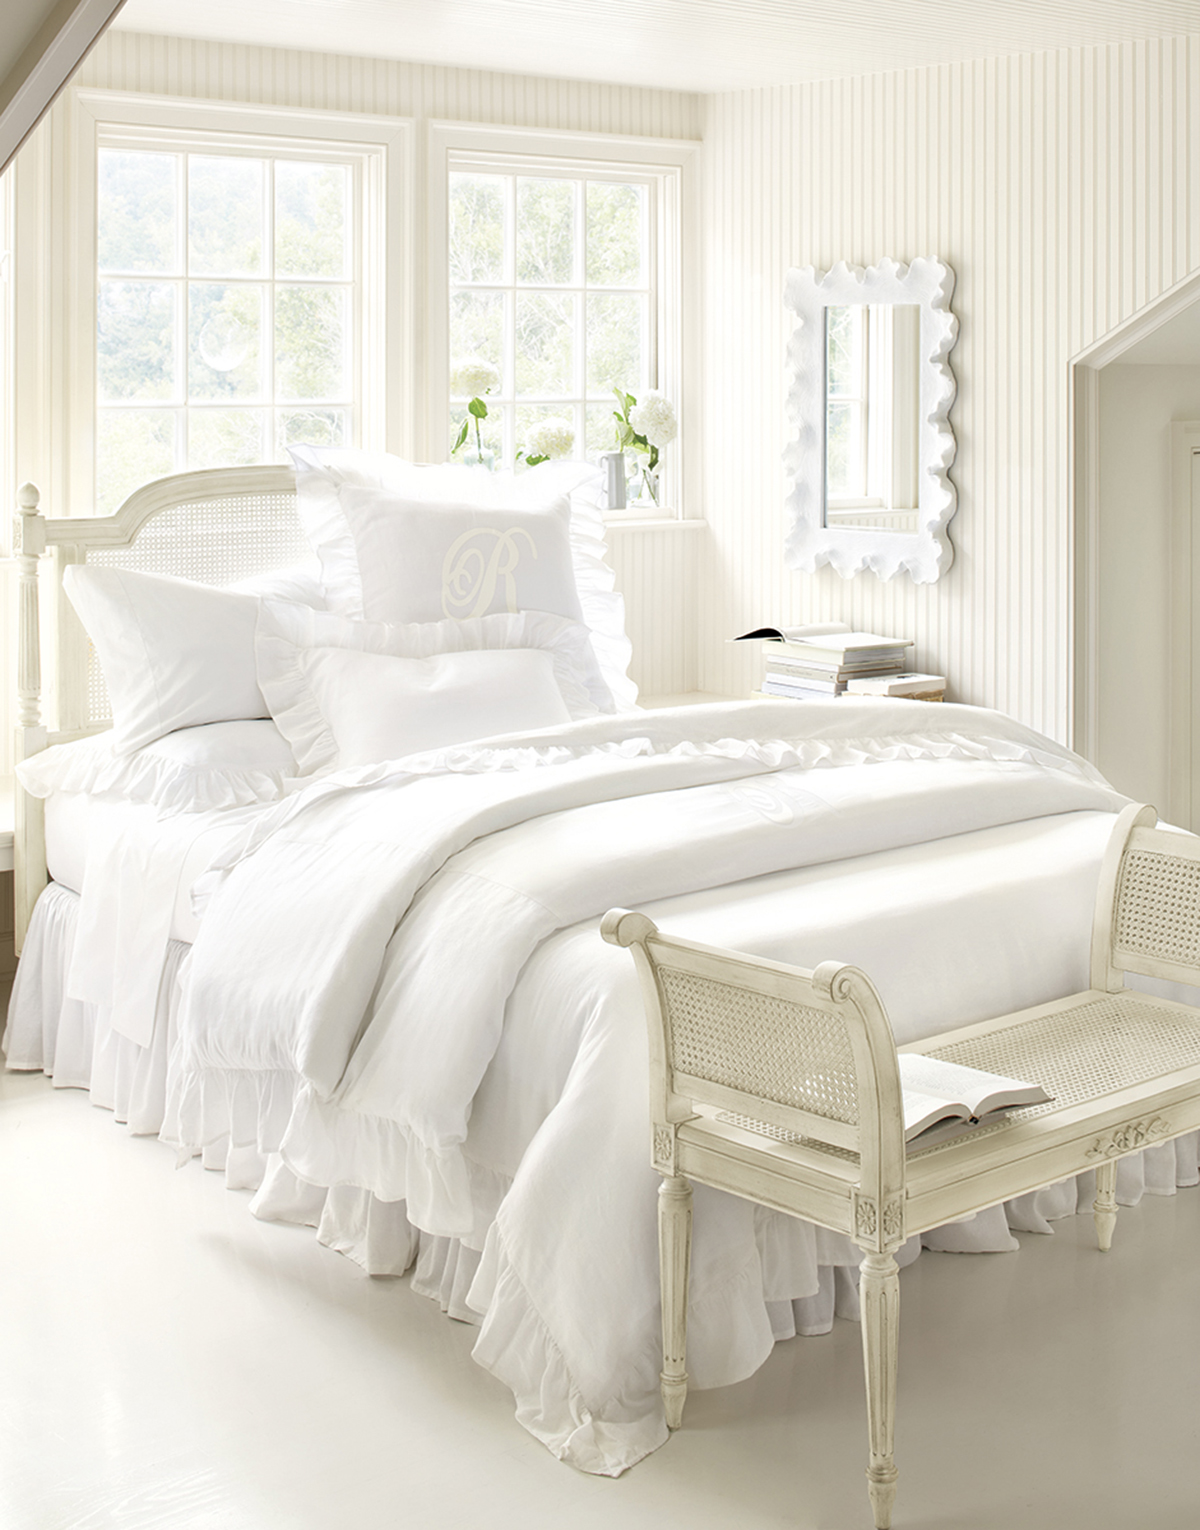 25 all white bedroom collection for your inspiration. Black Bedroom Furniture Sets. Home Design Ideas